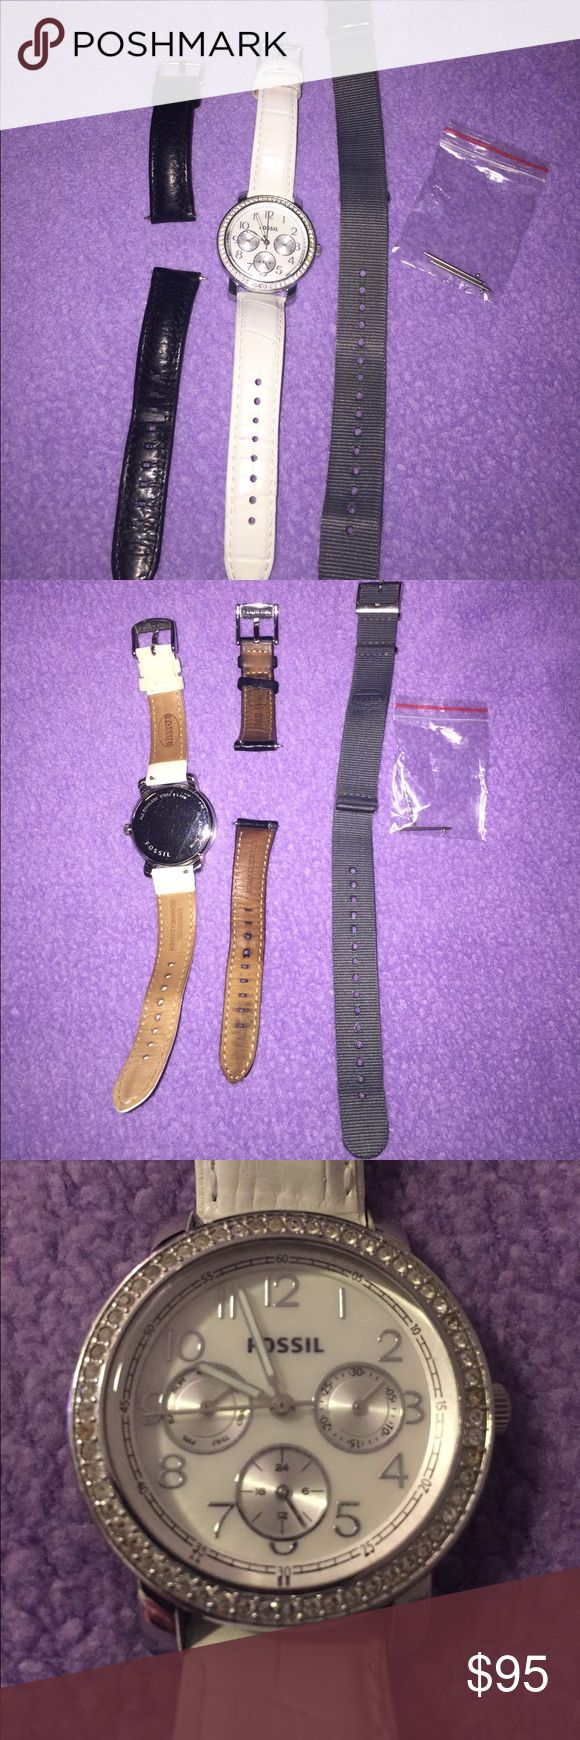 Fossil Watch Gemstone lined, with three interchangeable bands. One white genuine leather, one black genuine leather and one gray (I believe it's Nylon). No scratches on the face, minor scratches on the back. Brand new battery. Reads day of the week, date and time. Three of the gemstones appear yellowish, which you can see in the pictures, but I believe they could be cleaned. White band also has some minor imperfections as pictured, and the gray band has some signs of wear (color lighter on…